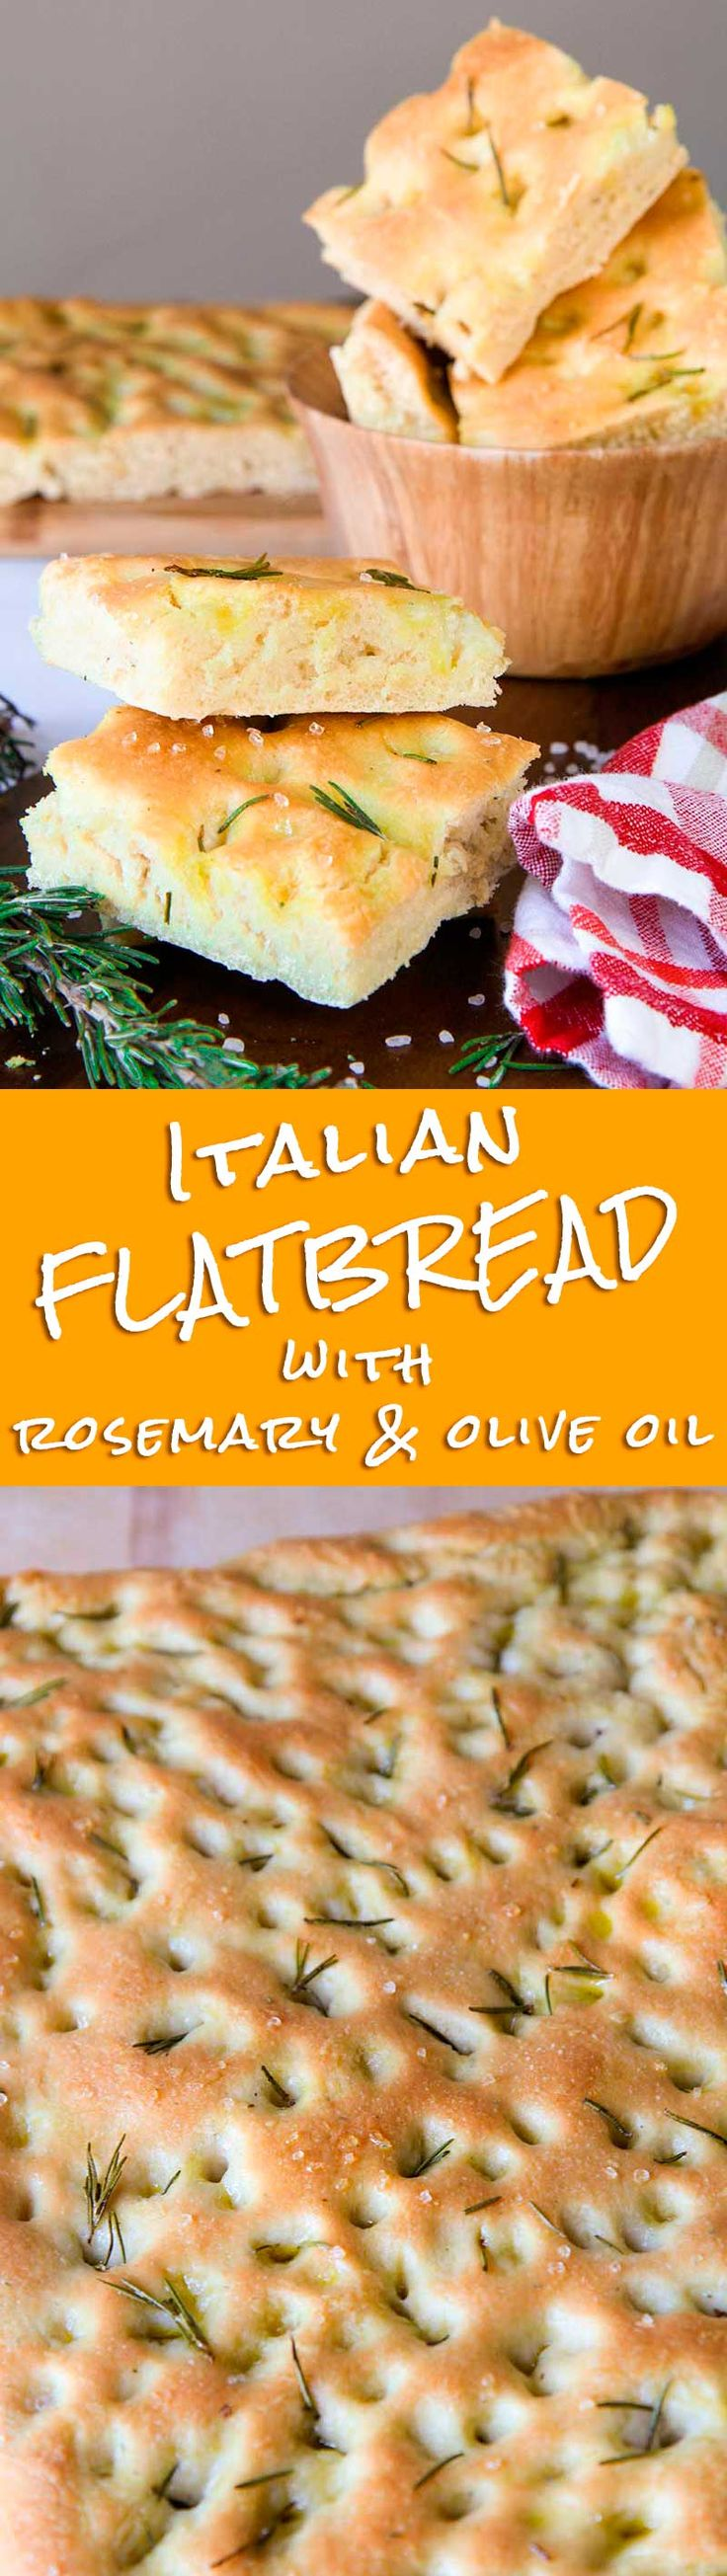 "ROSEMARY FLATBREAD with olive oil (Italian focaccia) - Rosemary flatbread is a Tuscan specialty! In Italy it is called ""focaccia"" or ""schiacciata"". Coarse salt is essential to obtain the characteristic taste and texture. The Italian tradition requires adbundant olive oil. For this reason the quality of the oil is essential to obtain a great ""schiacciata"". I love load my rosemary flatbread with cheese, baked vegetables or cured meats, but it is delicious simply plain as well! - pizza, recipe"